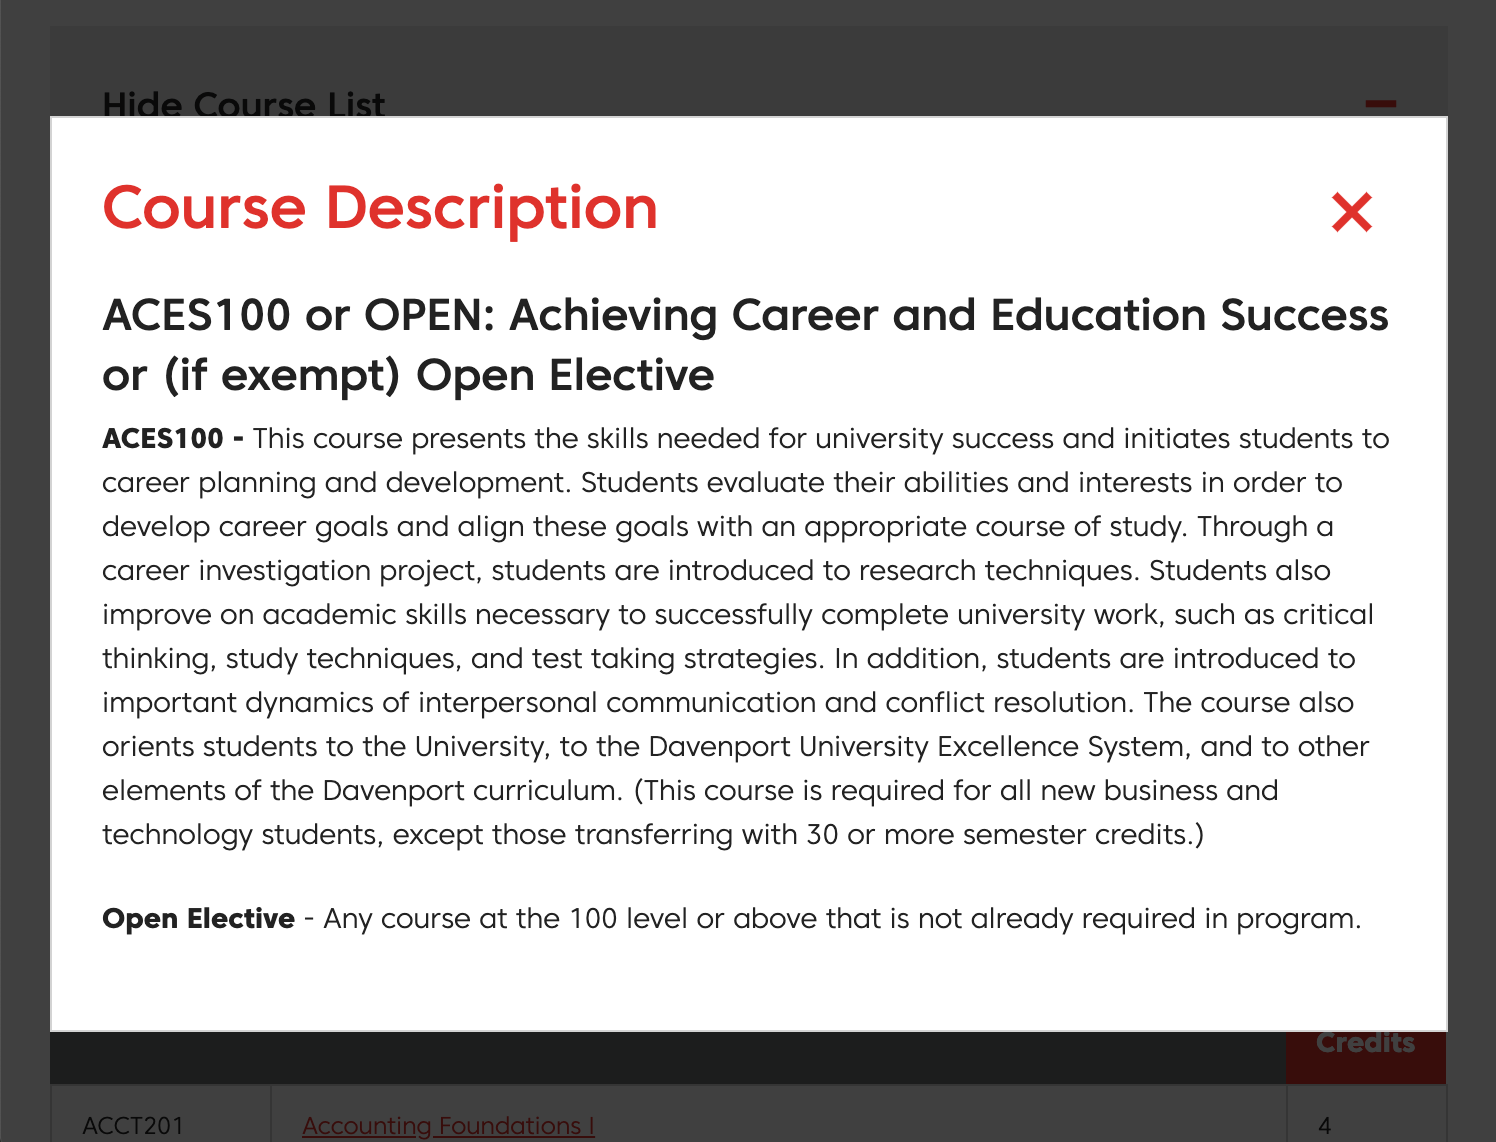 Course description popup window for Davenport University program list